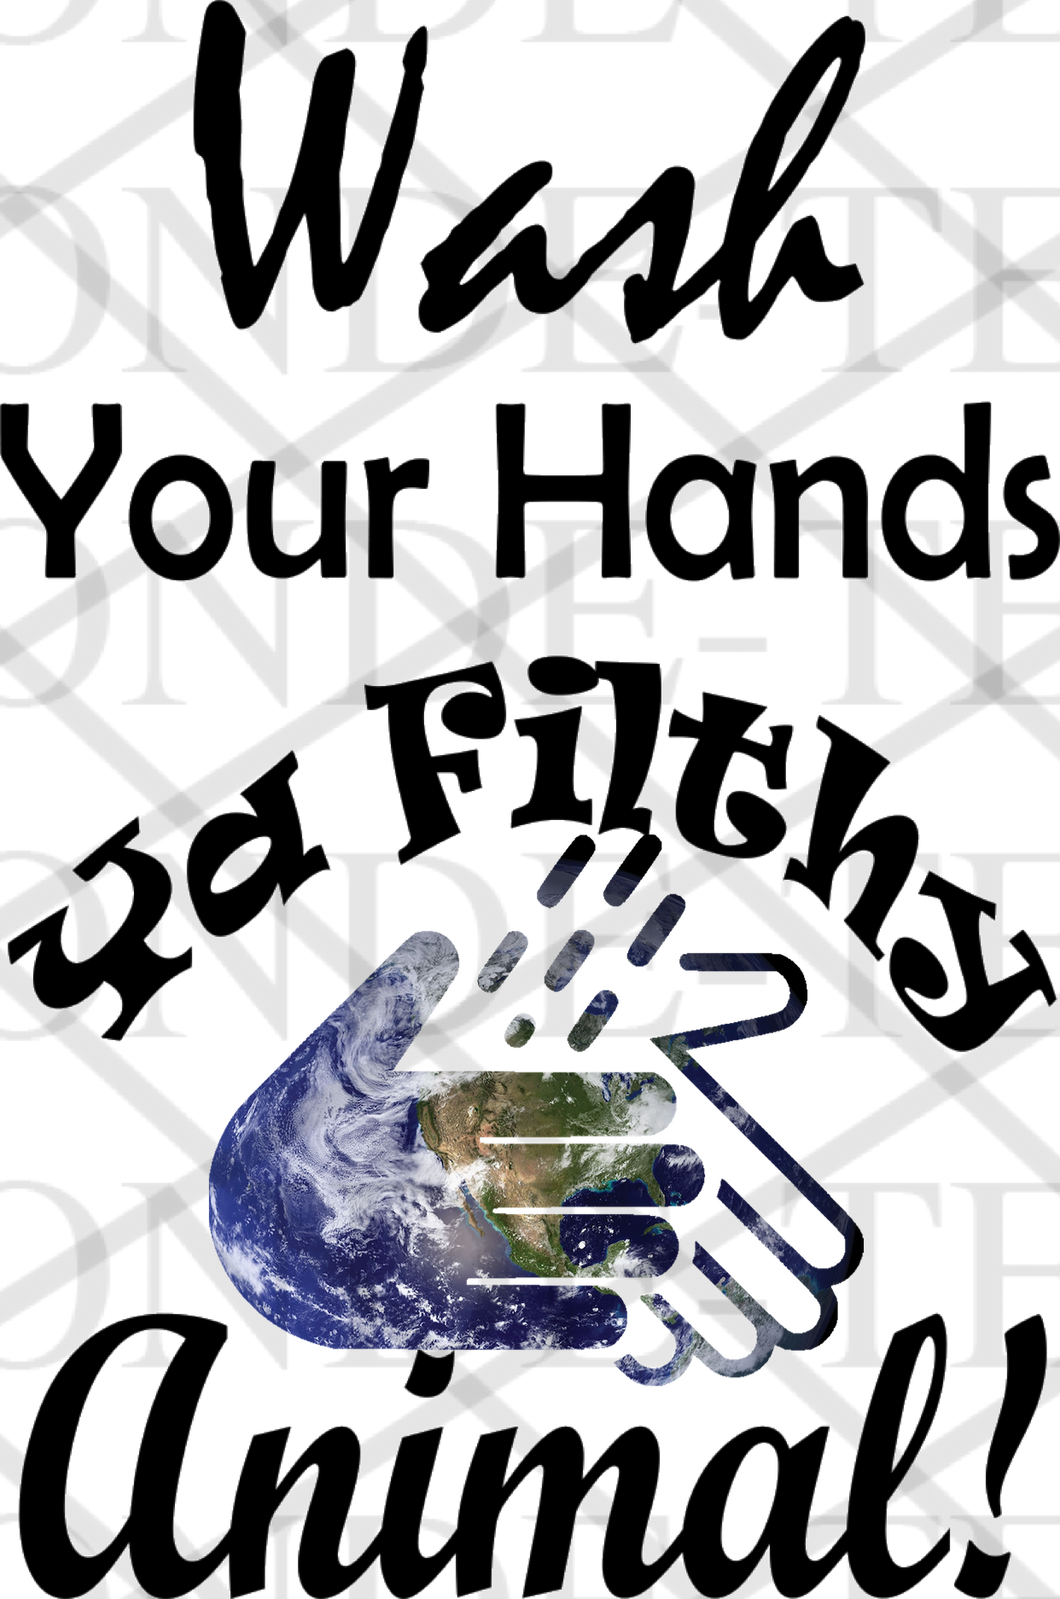 Wash Your Hands Ya Filthy Animal w/ Hands - Digital Download